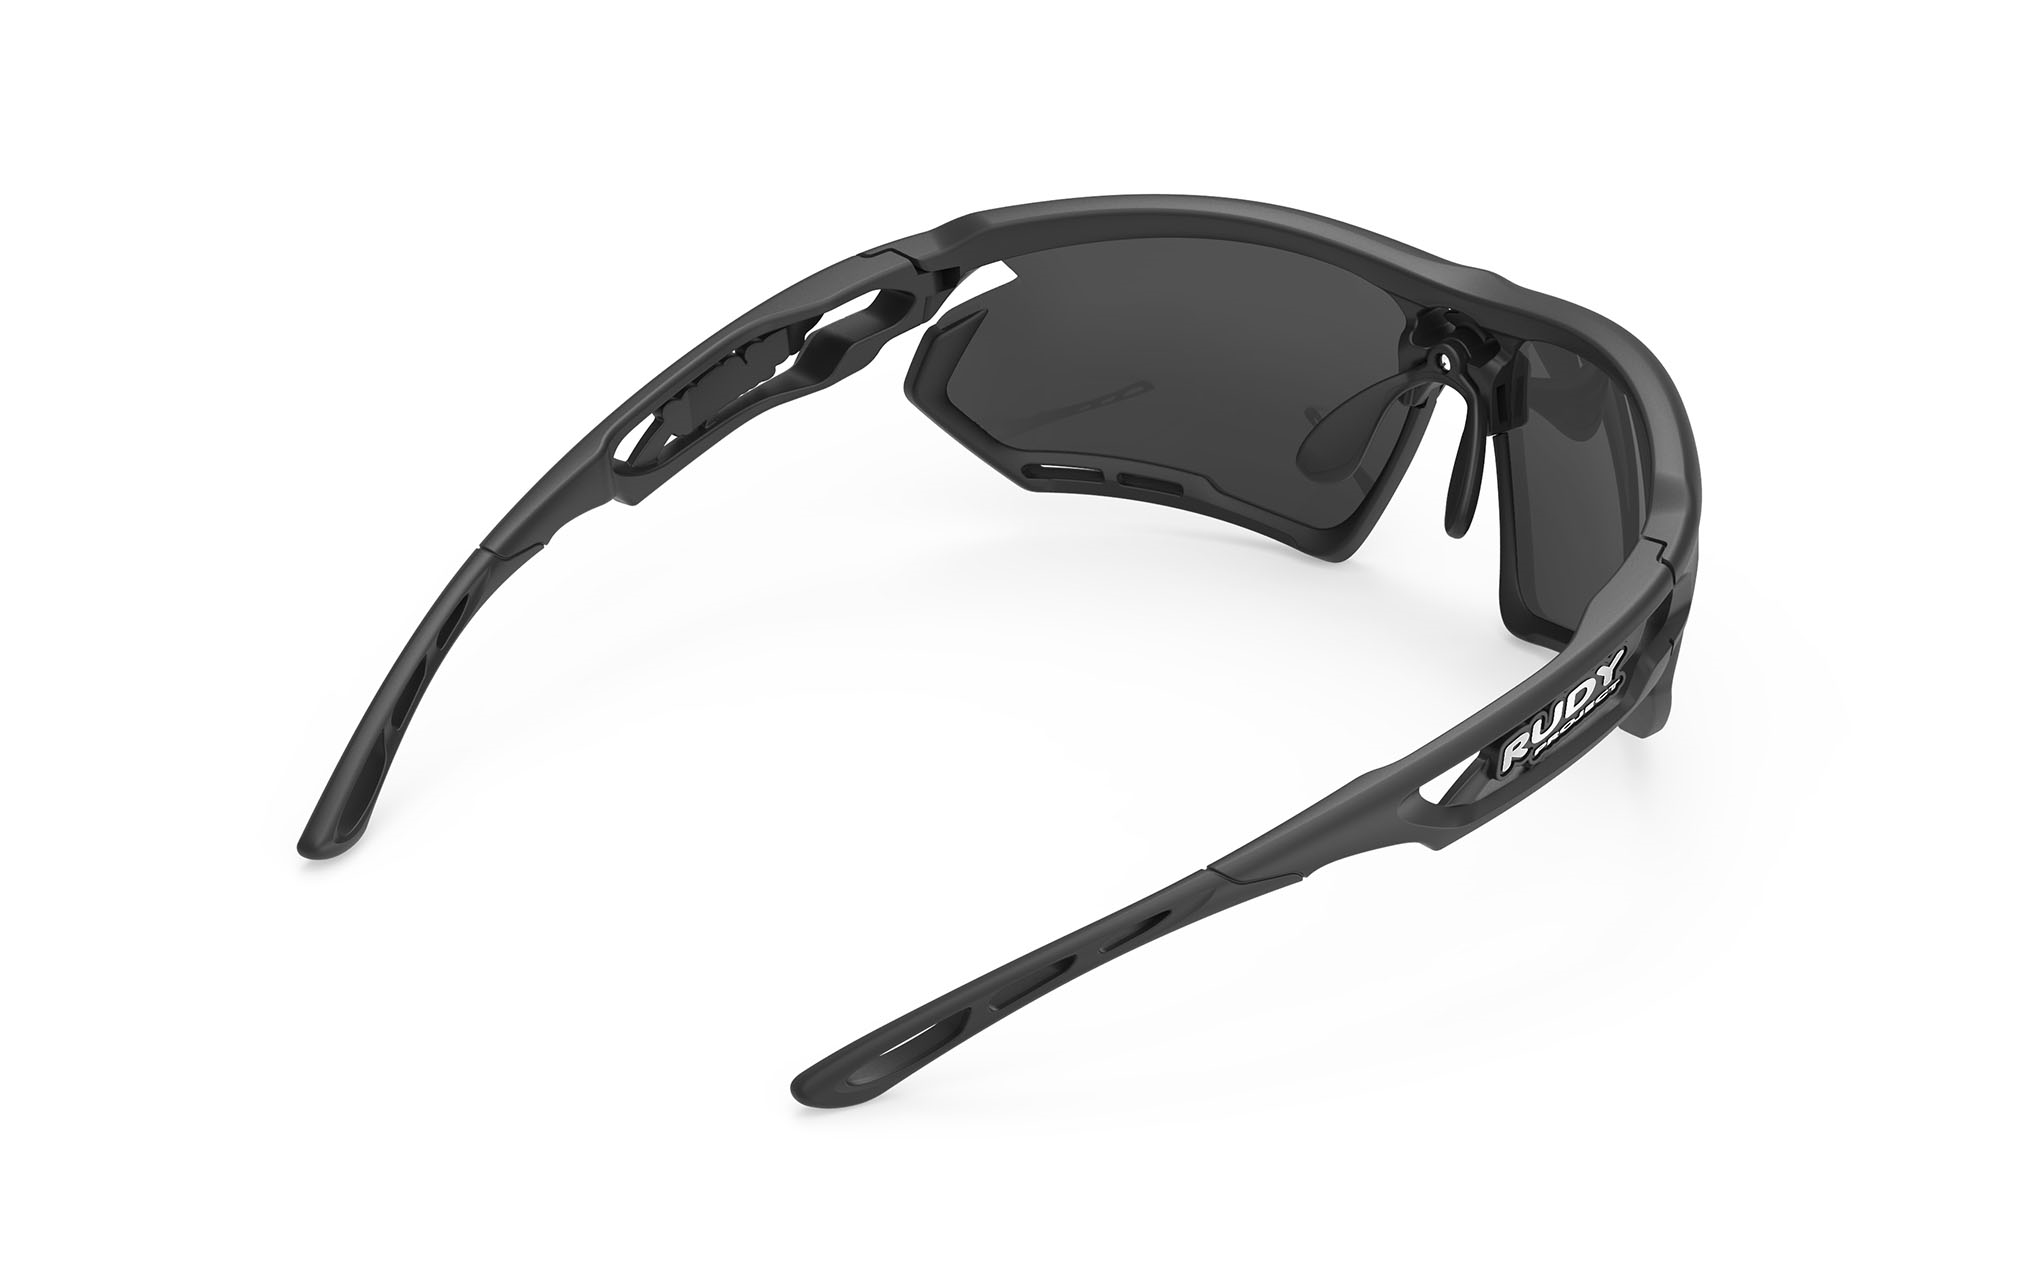 c59c9303b4 Performance Eyewear Fotonyk - Rudy Project